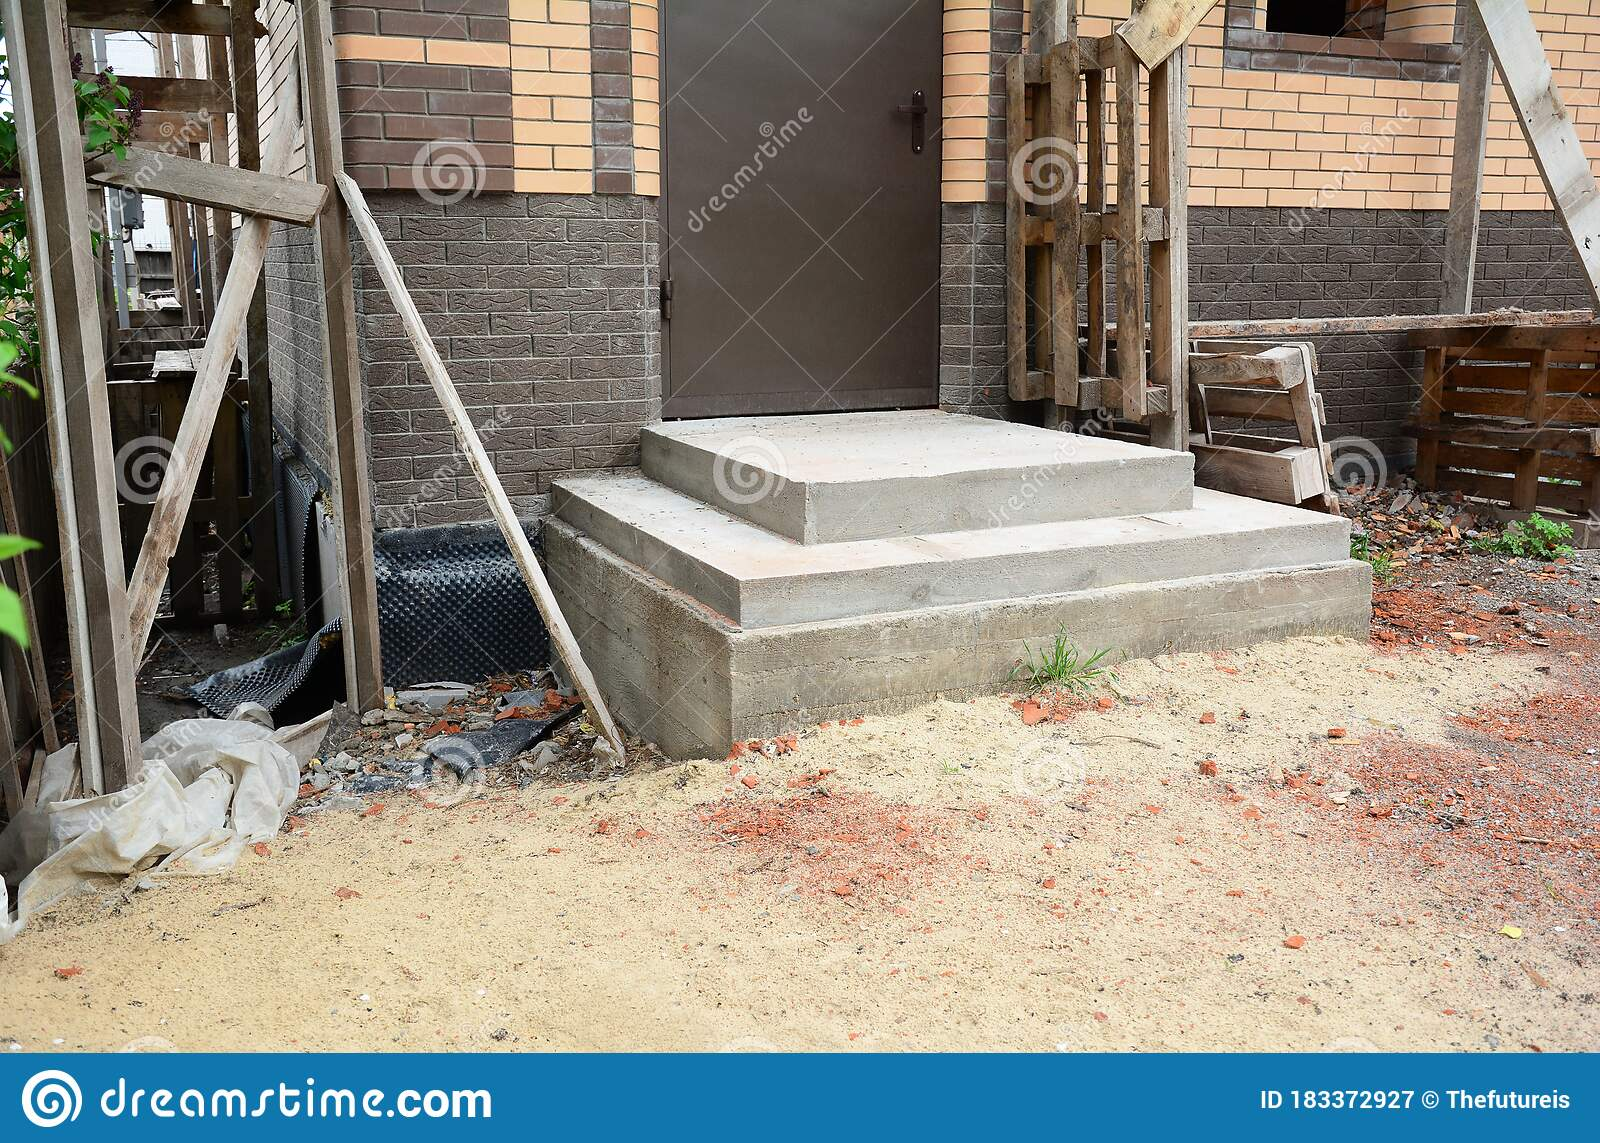 Building Poured Concrete Front Porch Steps To The Entrance Door Of A Brick House Under Construction Stock Image Image Of Entrance House 183372927